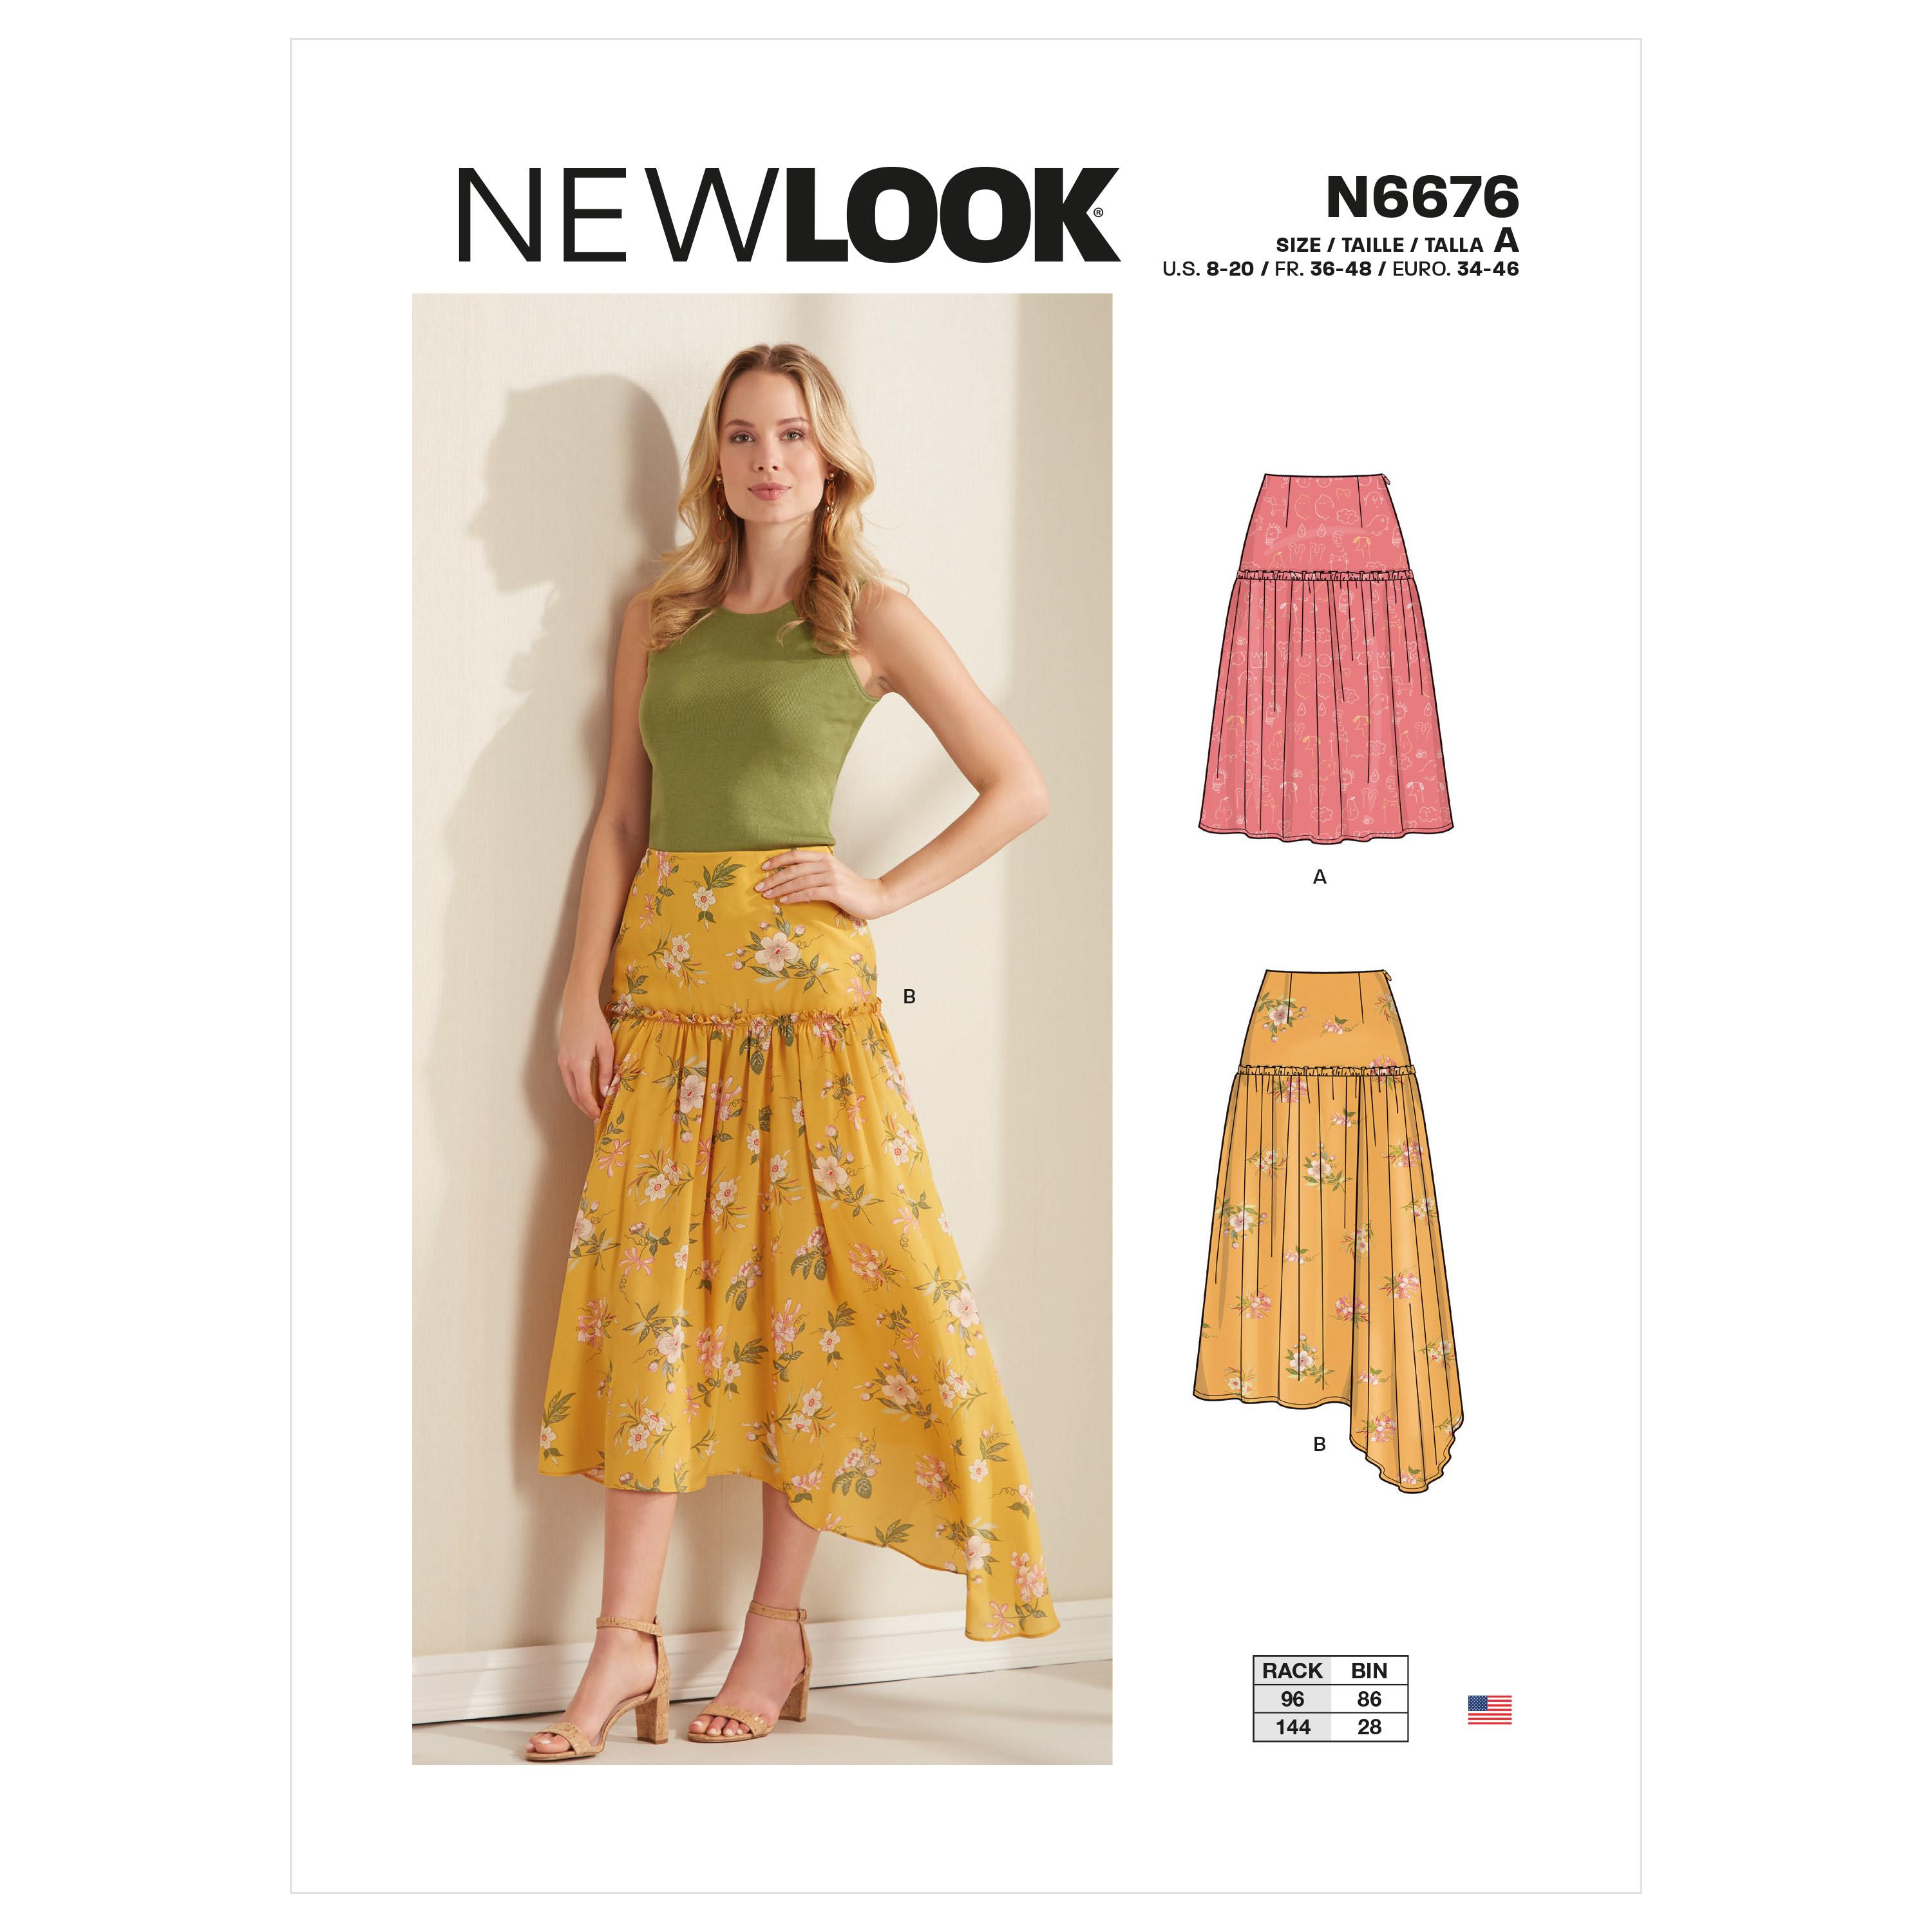 New Look Sewing Pattern N6676 Misses Skirts